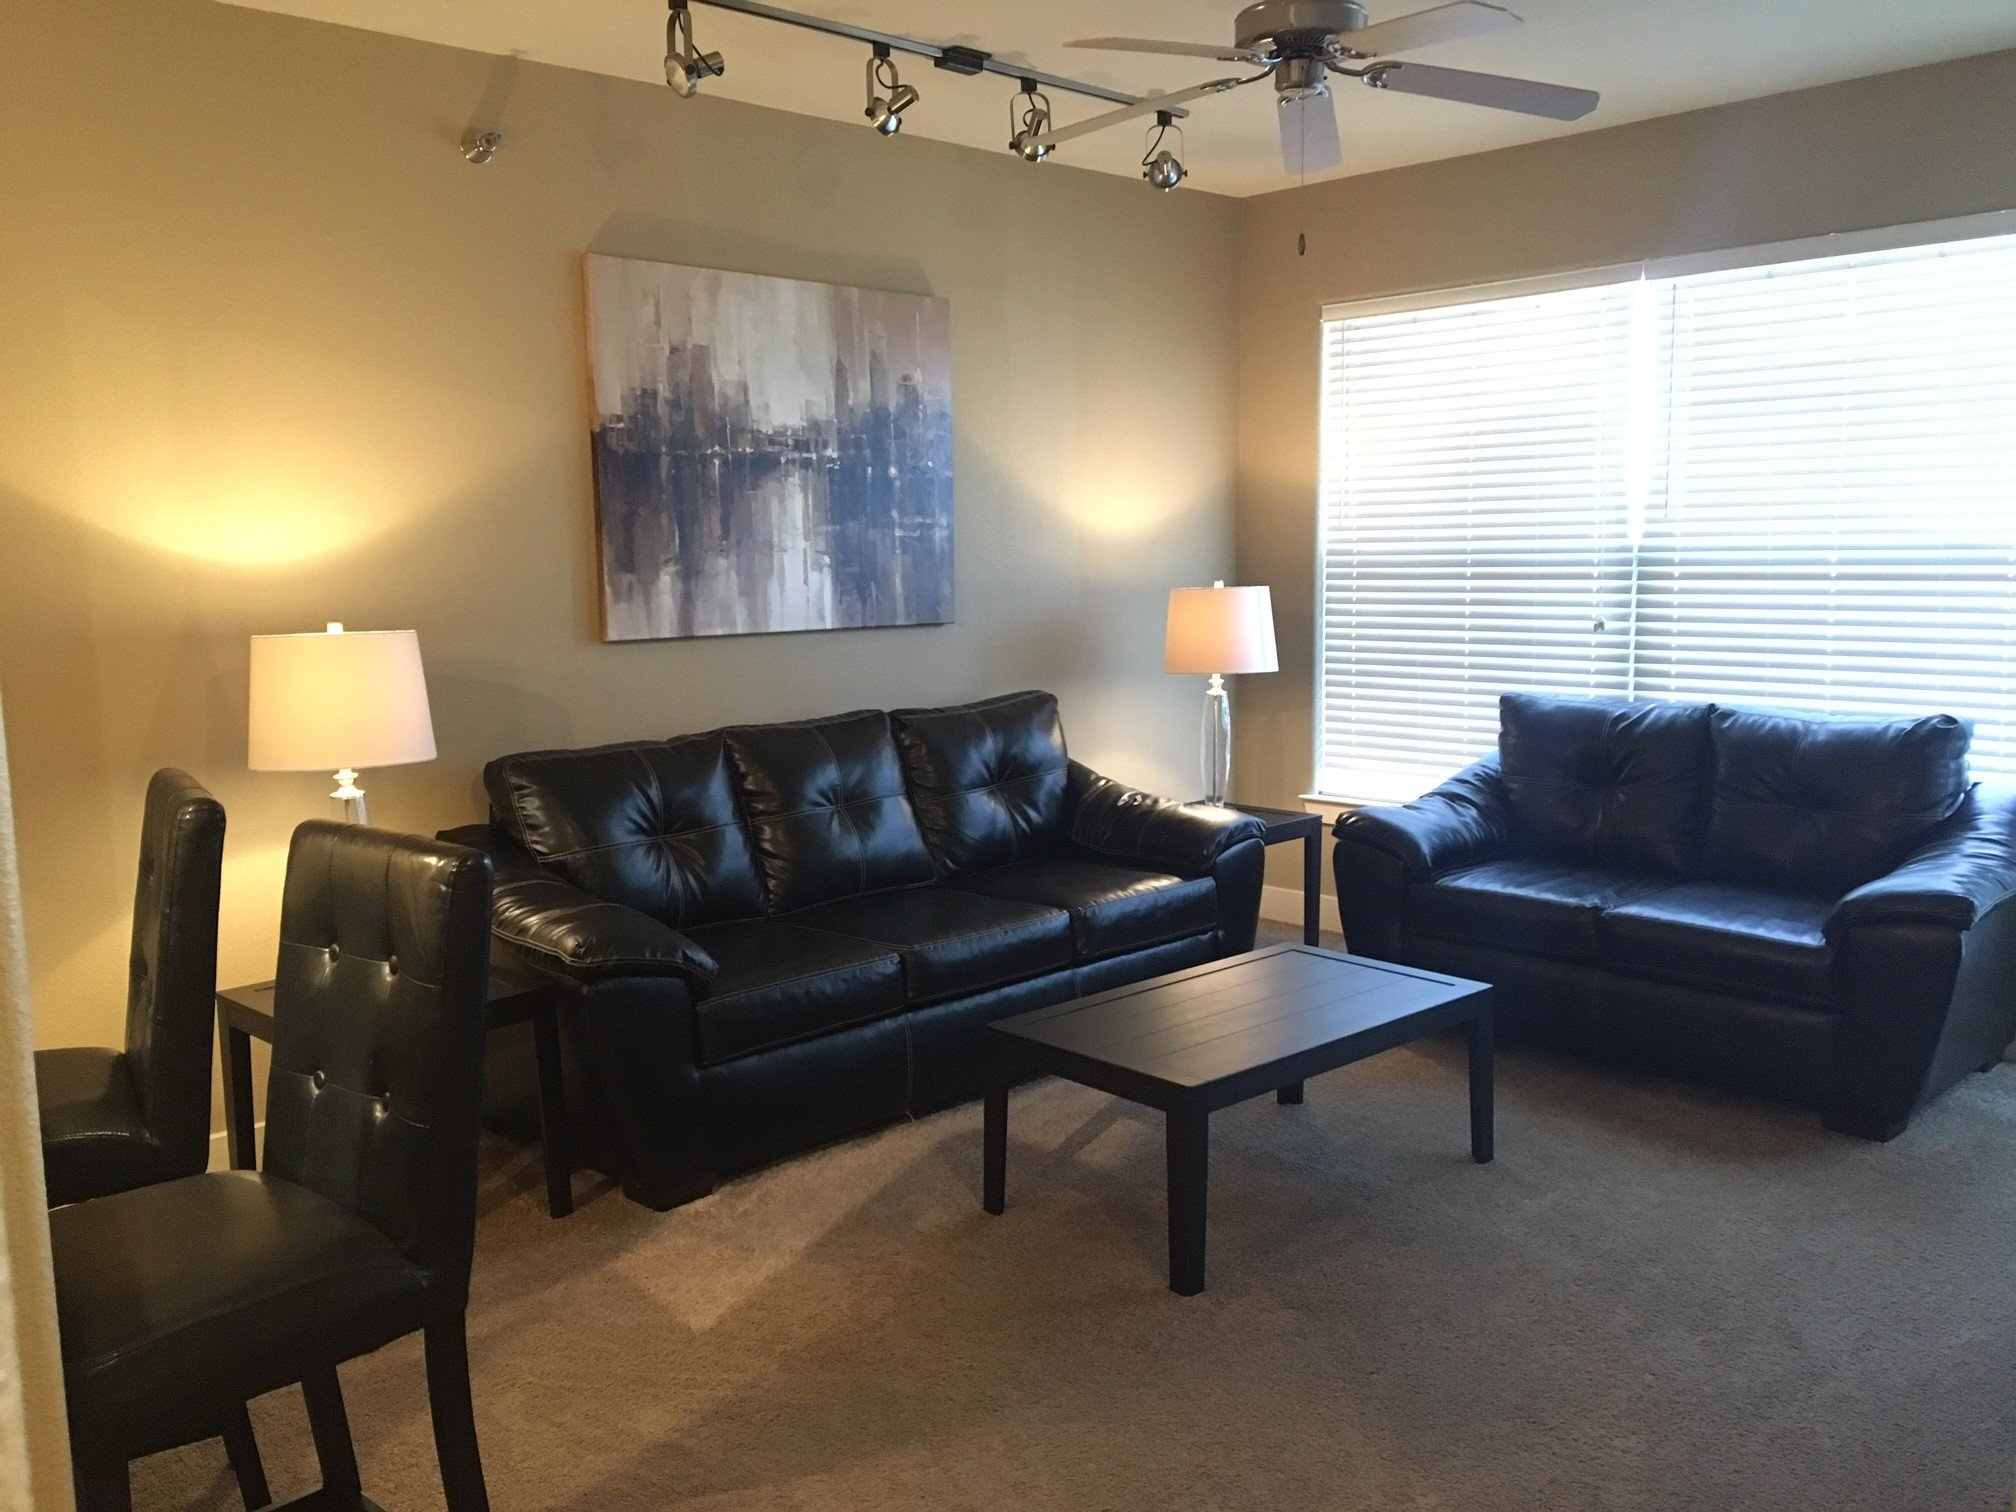 furnished apartments Little Rock AR